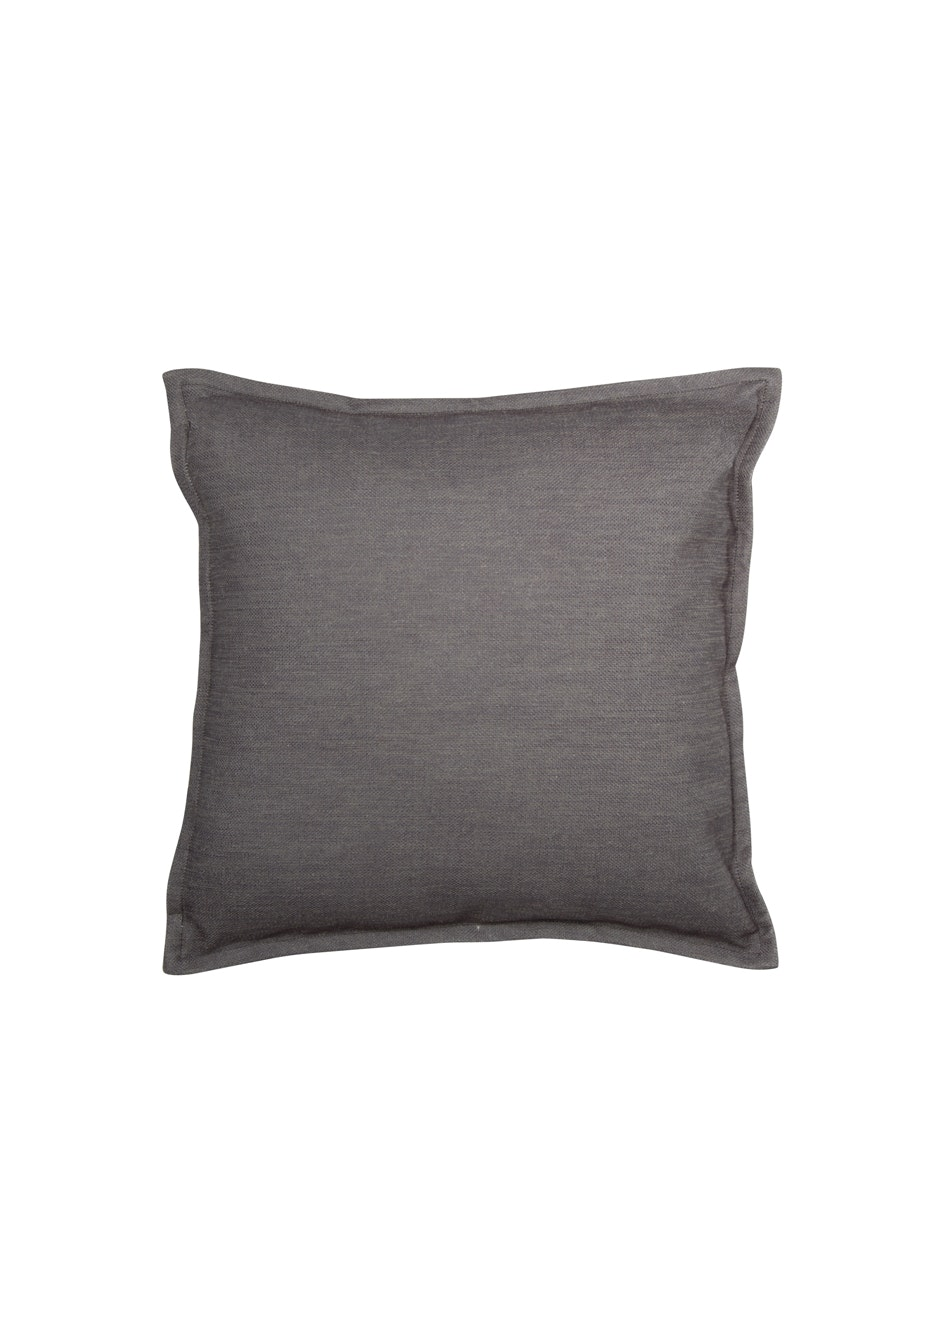 General Eclectic - Lorna Cushion Grey